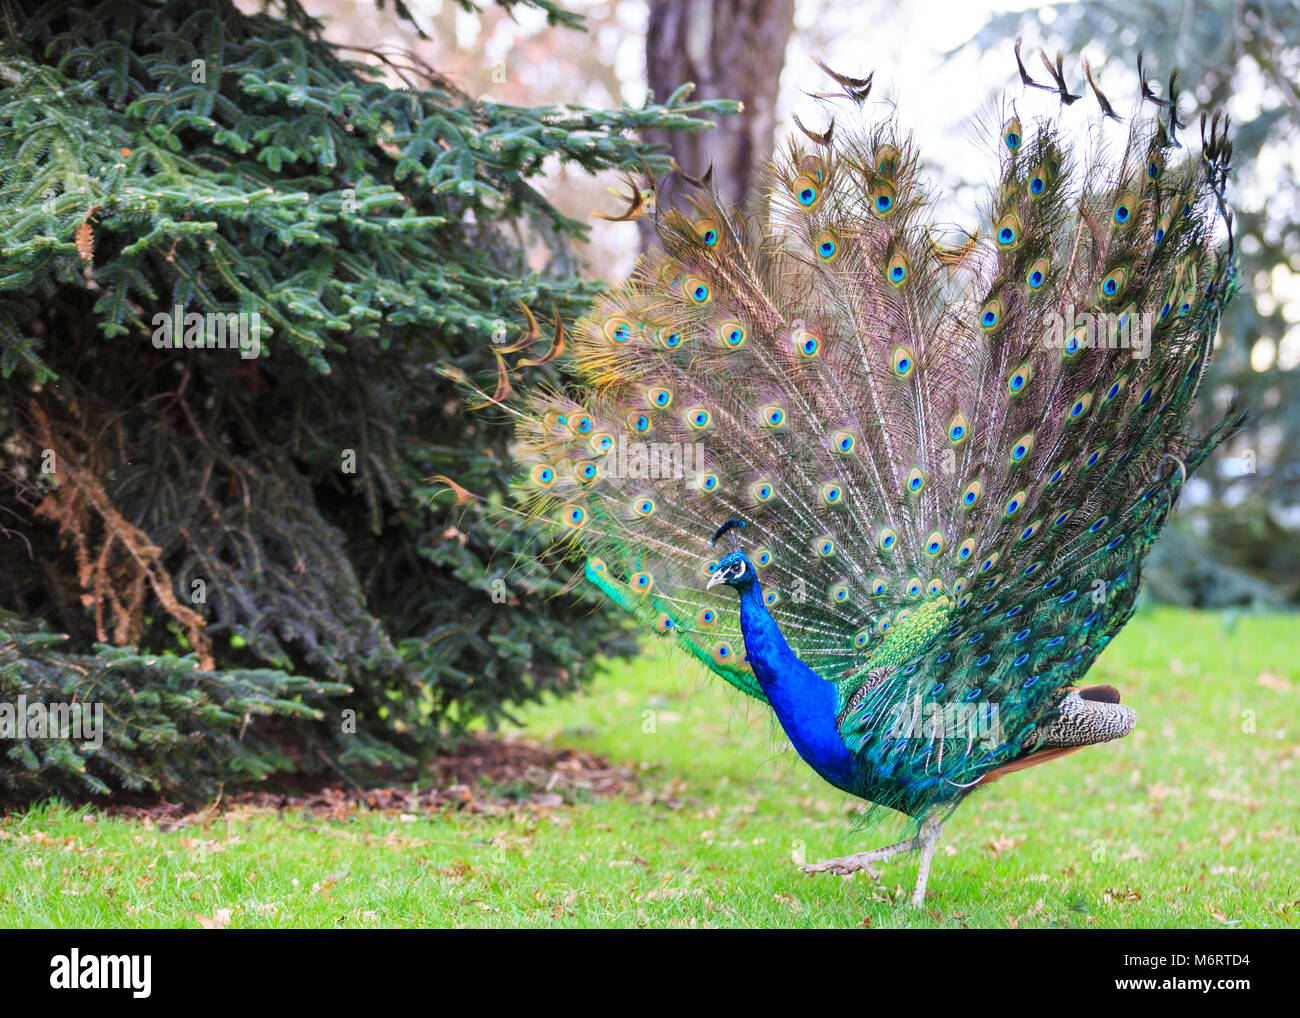 Peacock, male peafowl () spreading its wings and opening its feathers for a full feather display in parkland Stock Photo